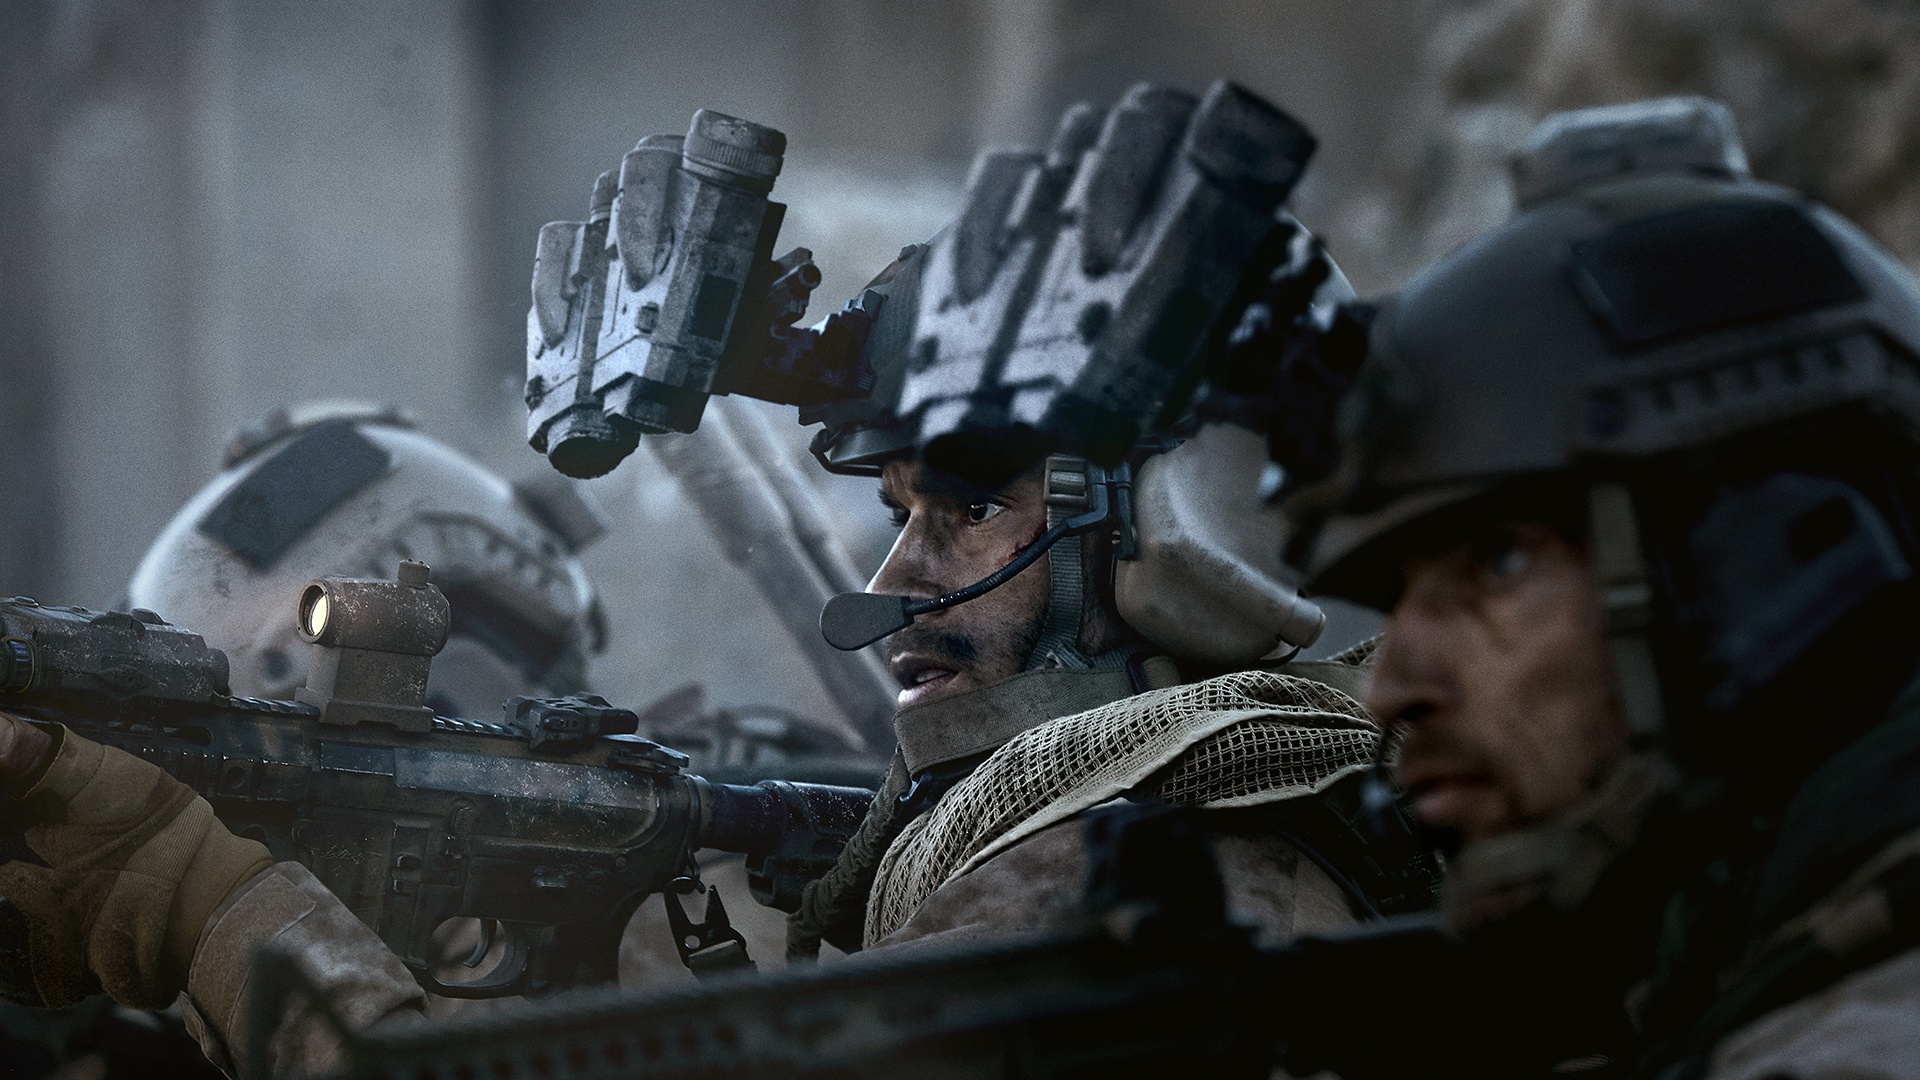 Download 5000+ Wallpaper Abyss Call Of Duty HD Terbaru